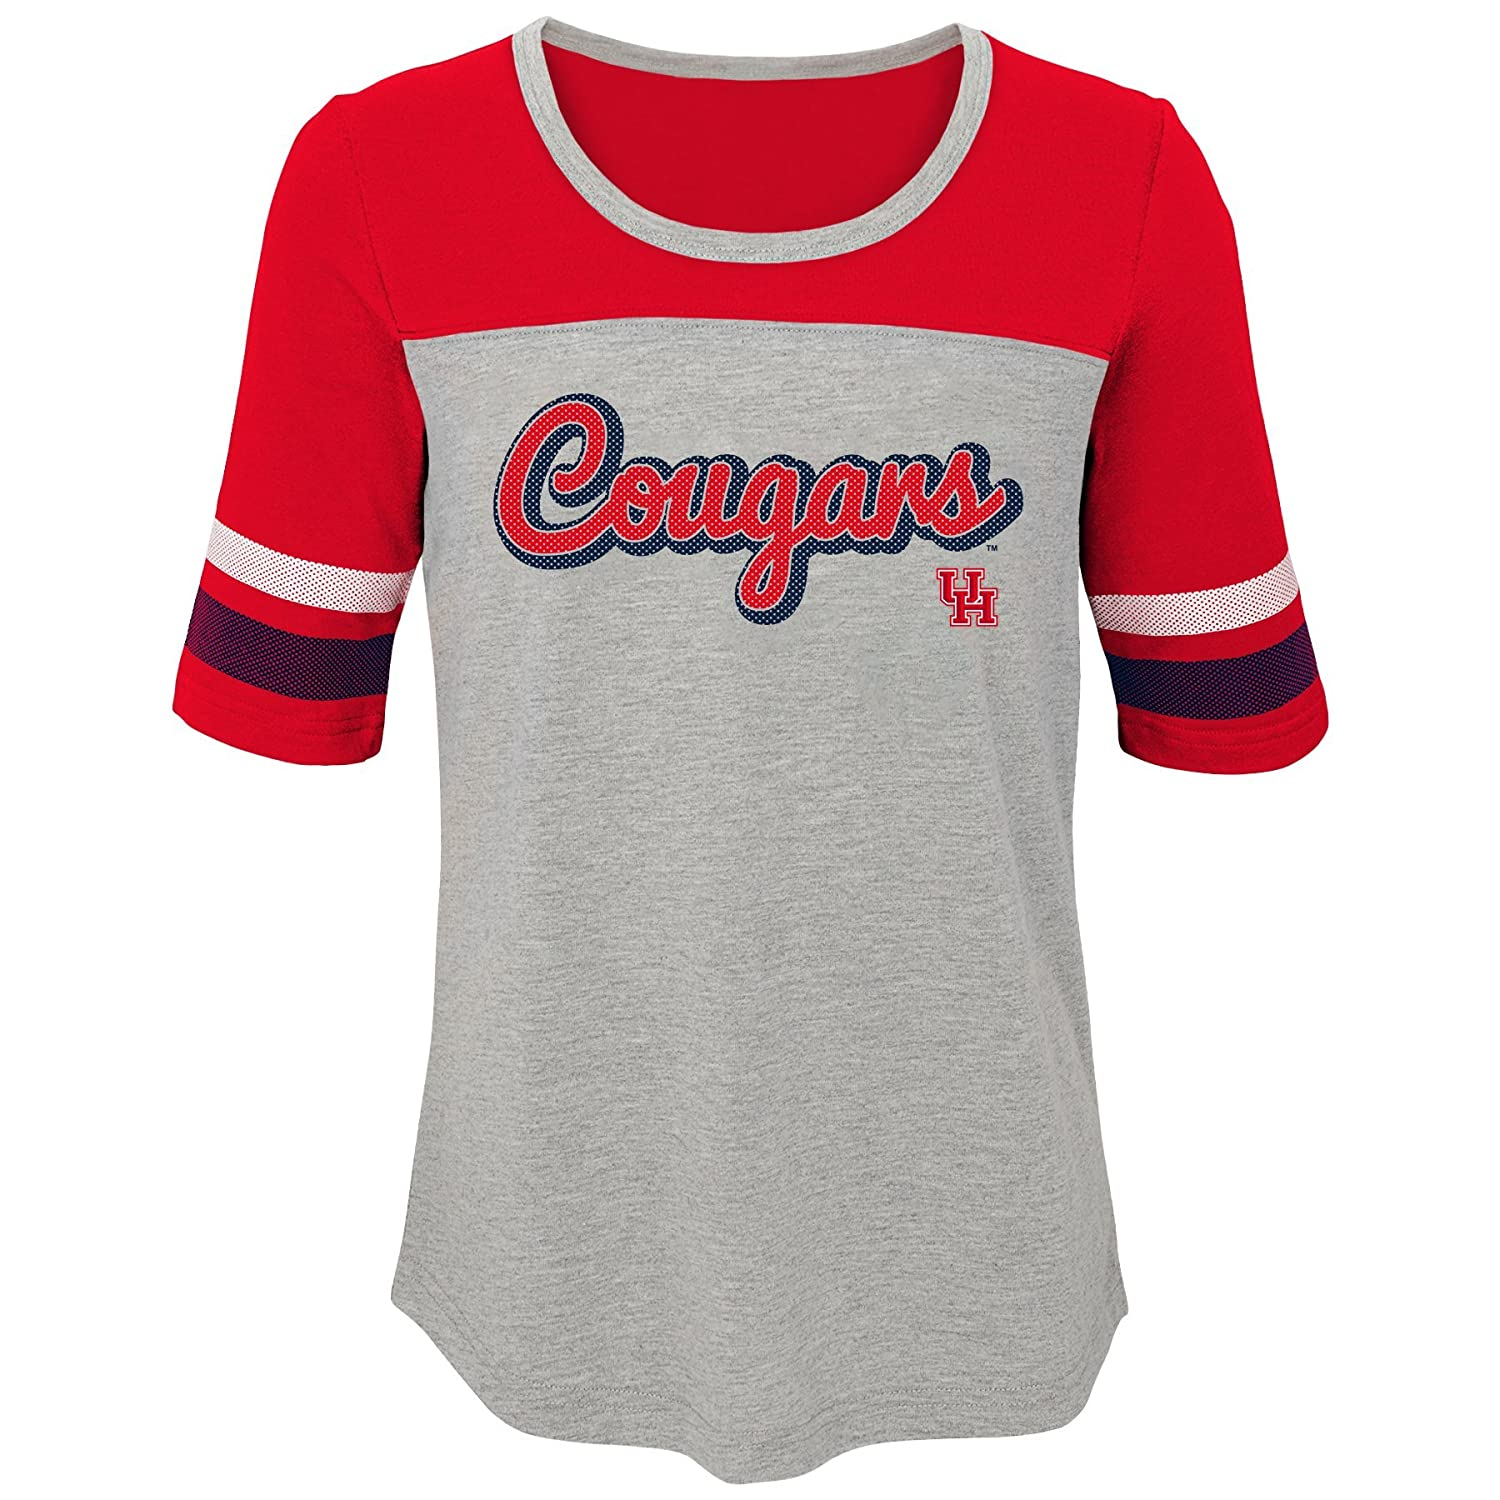 Youth Large NCAA by Outerstuff NCAA Houston Cougars Youth Girls Fan-Tastic Short Sleeve Tee 14 Red